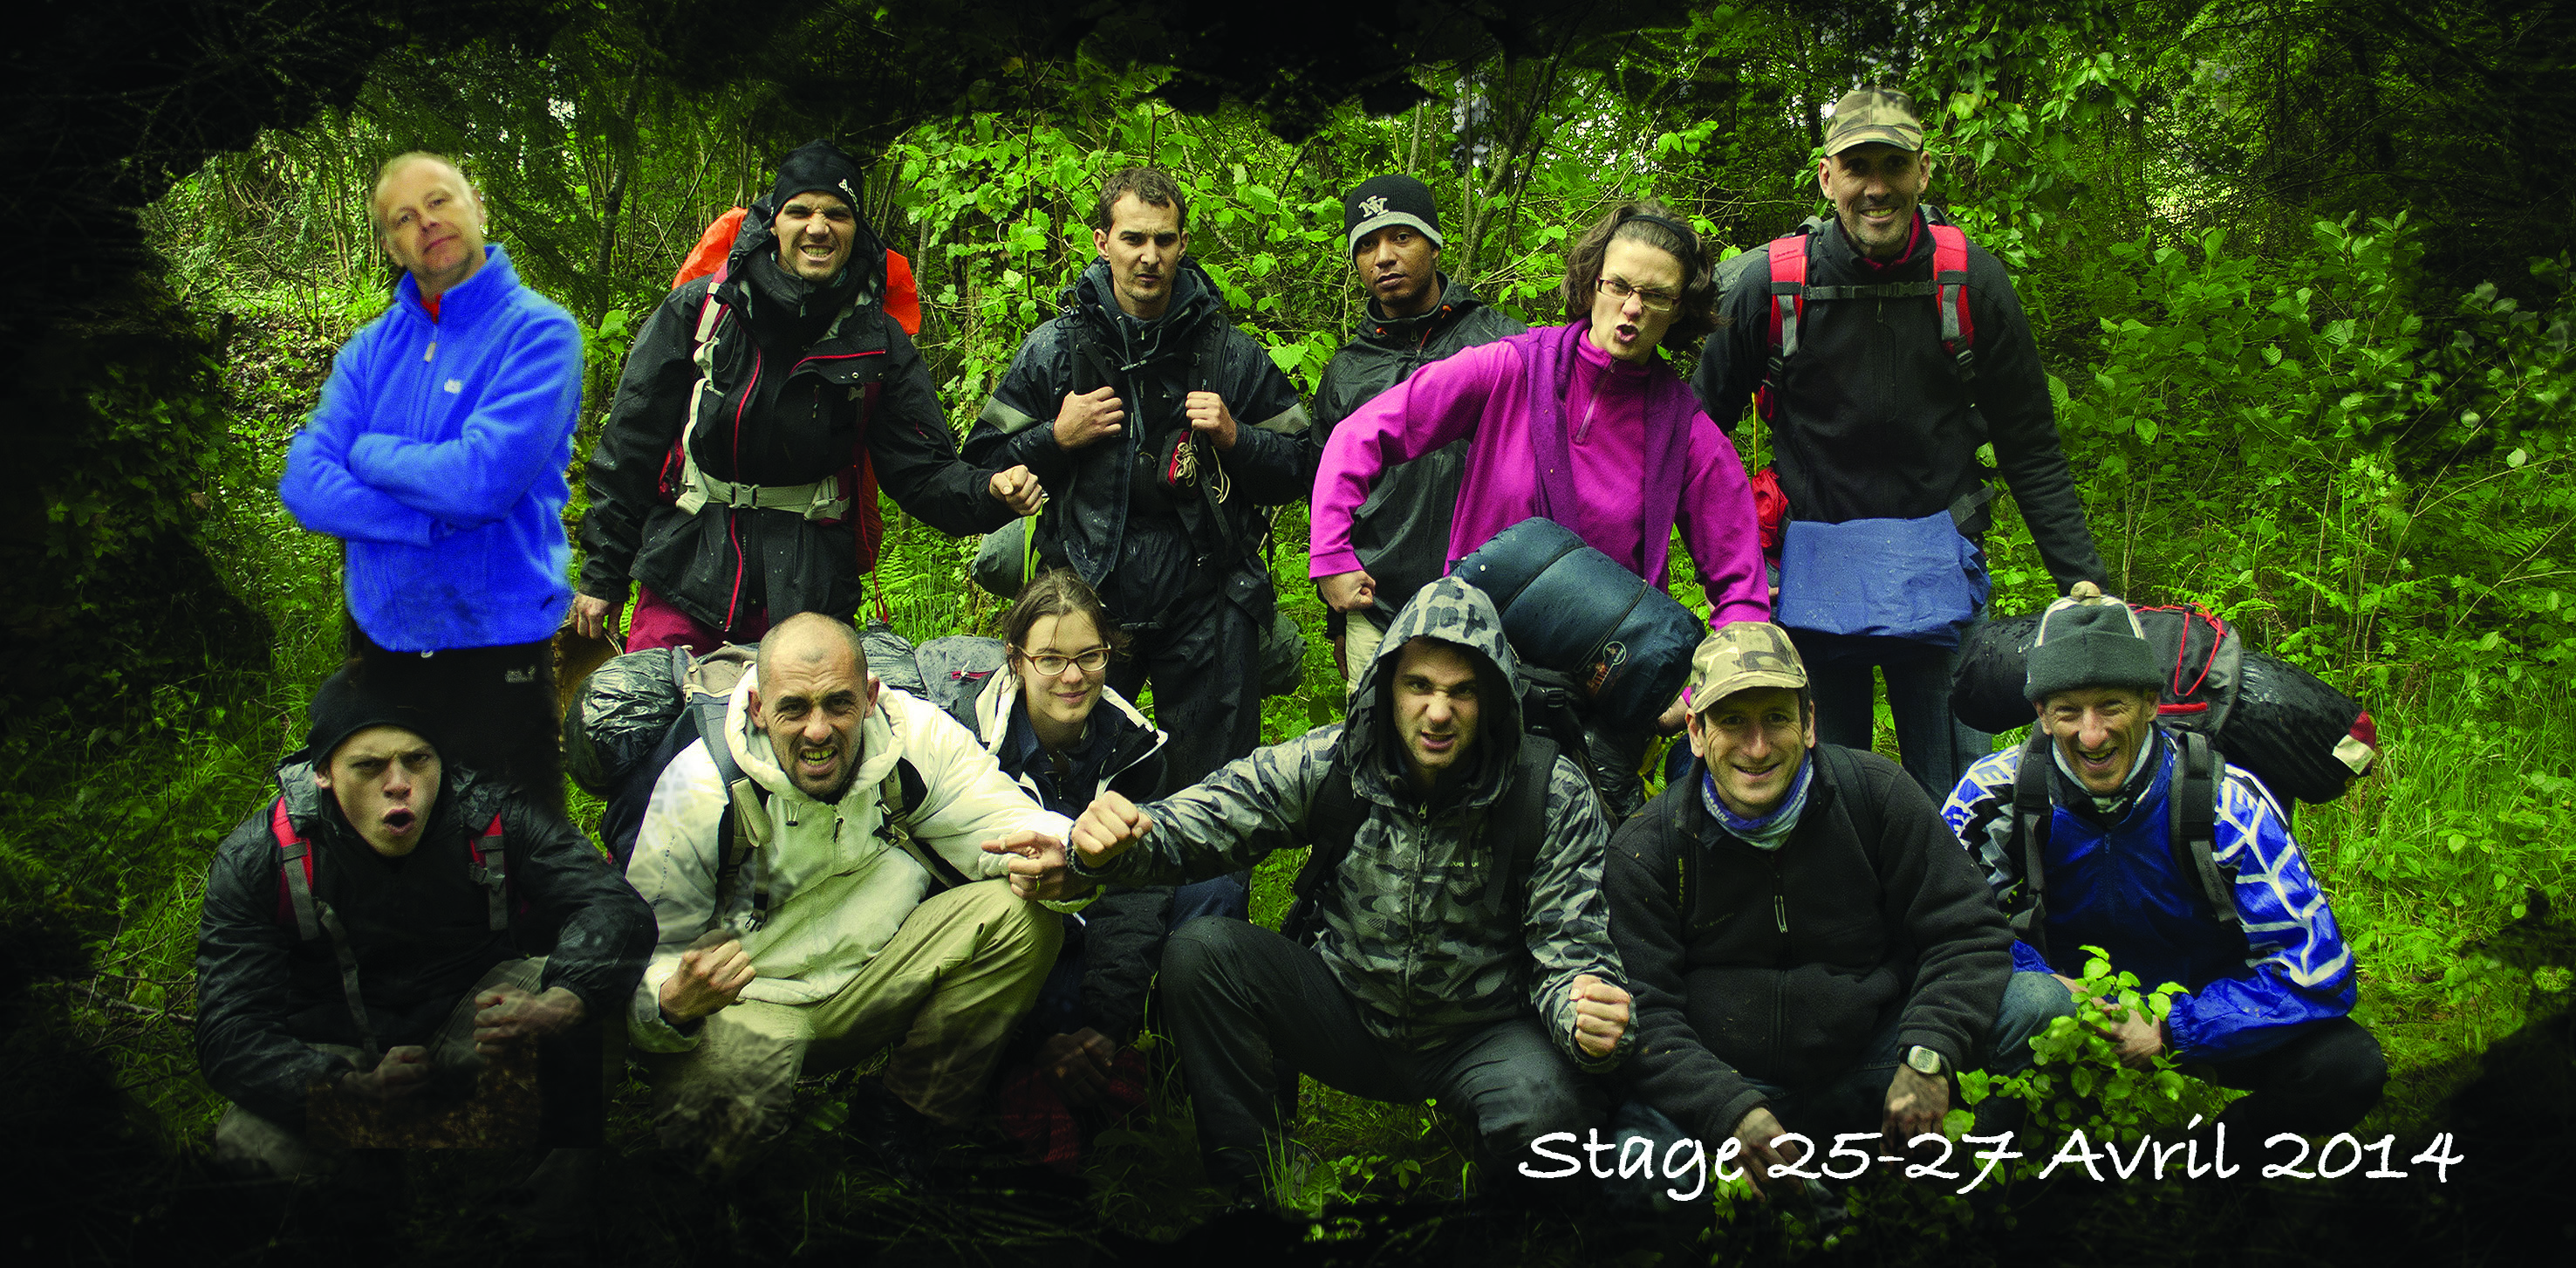 groupe 25-27avril 2014.jpg